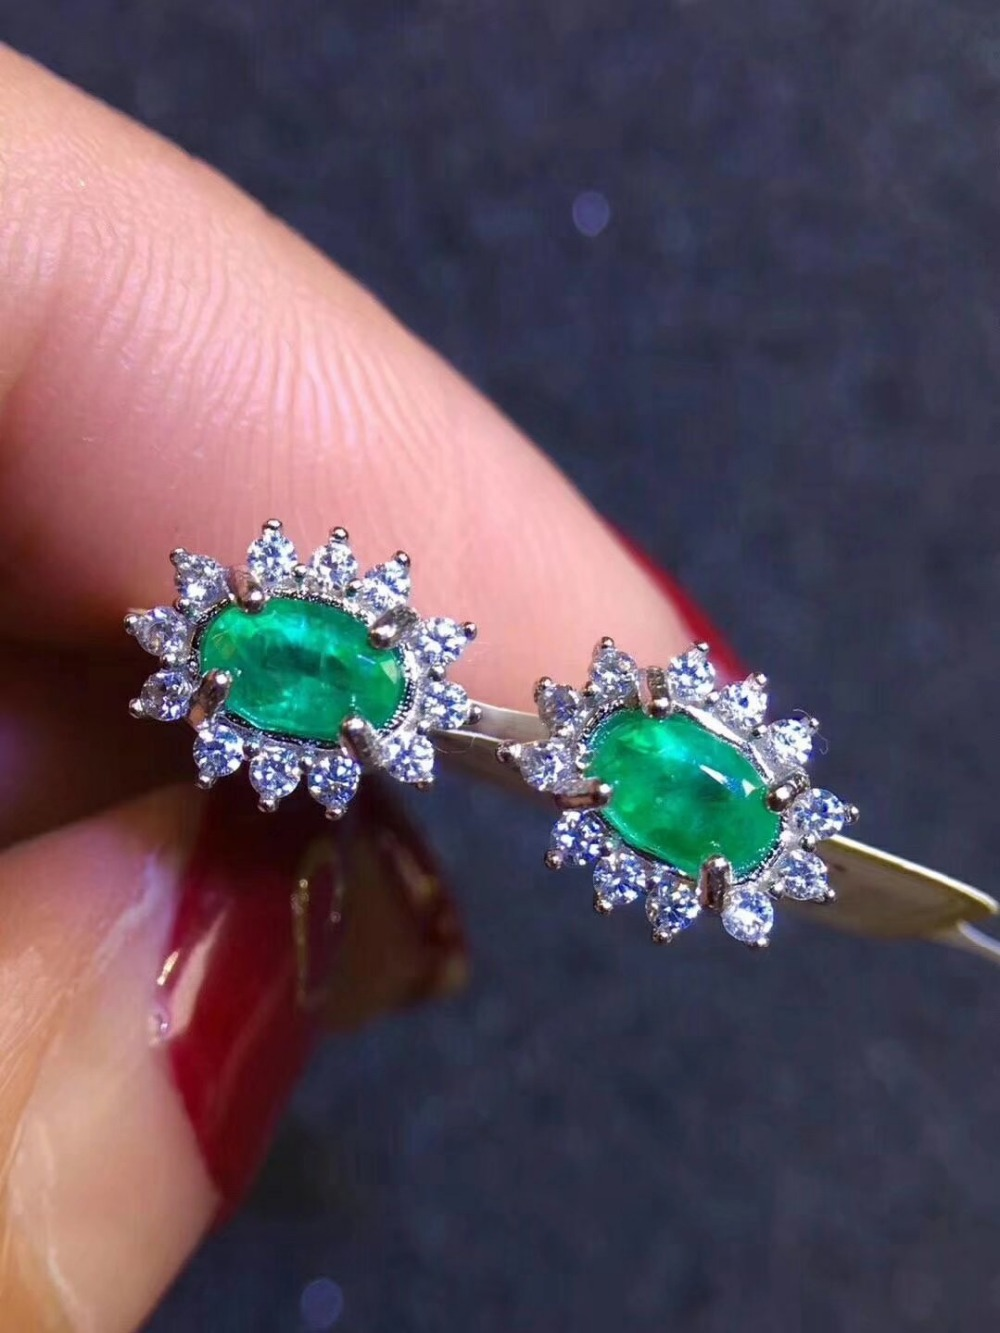 SHILOVEM 925 sterling silver Natural Emerald classic fine Jewelry Customizable women wedding women wholesale yh040602 shilovem 925 sterling silver emerald stud earrings classic fine jewelry women wedding women gift wholesale jce040601agml